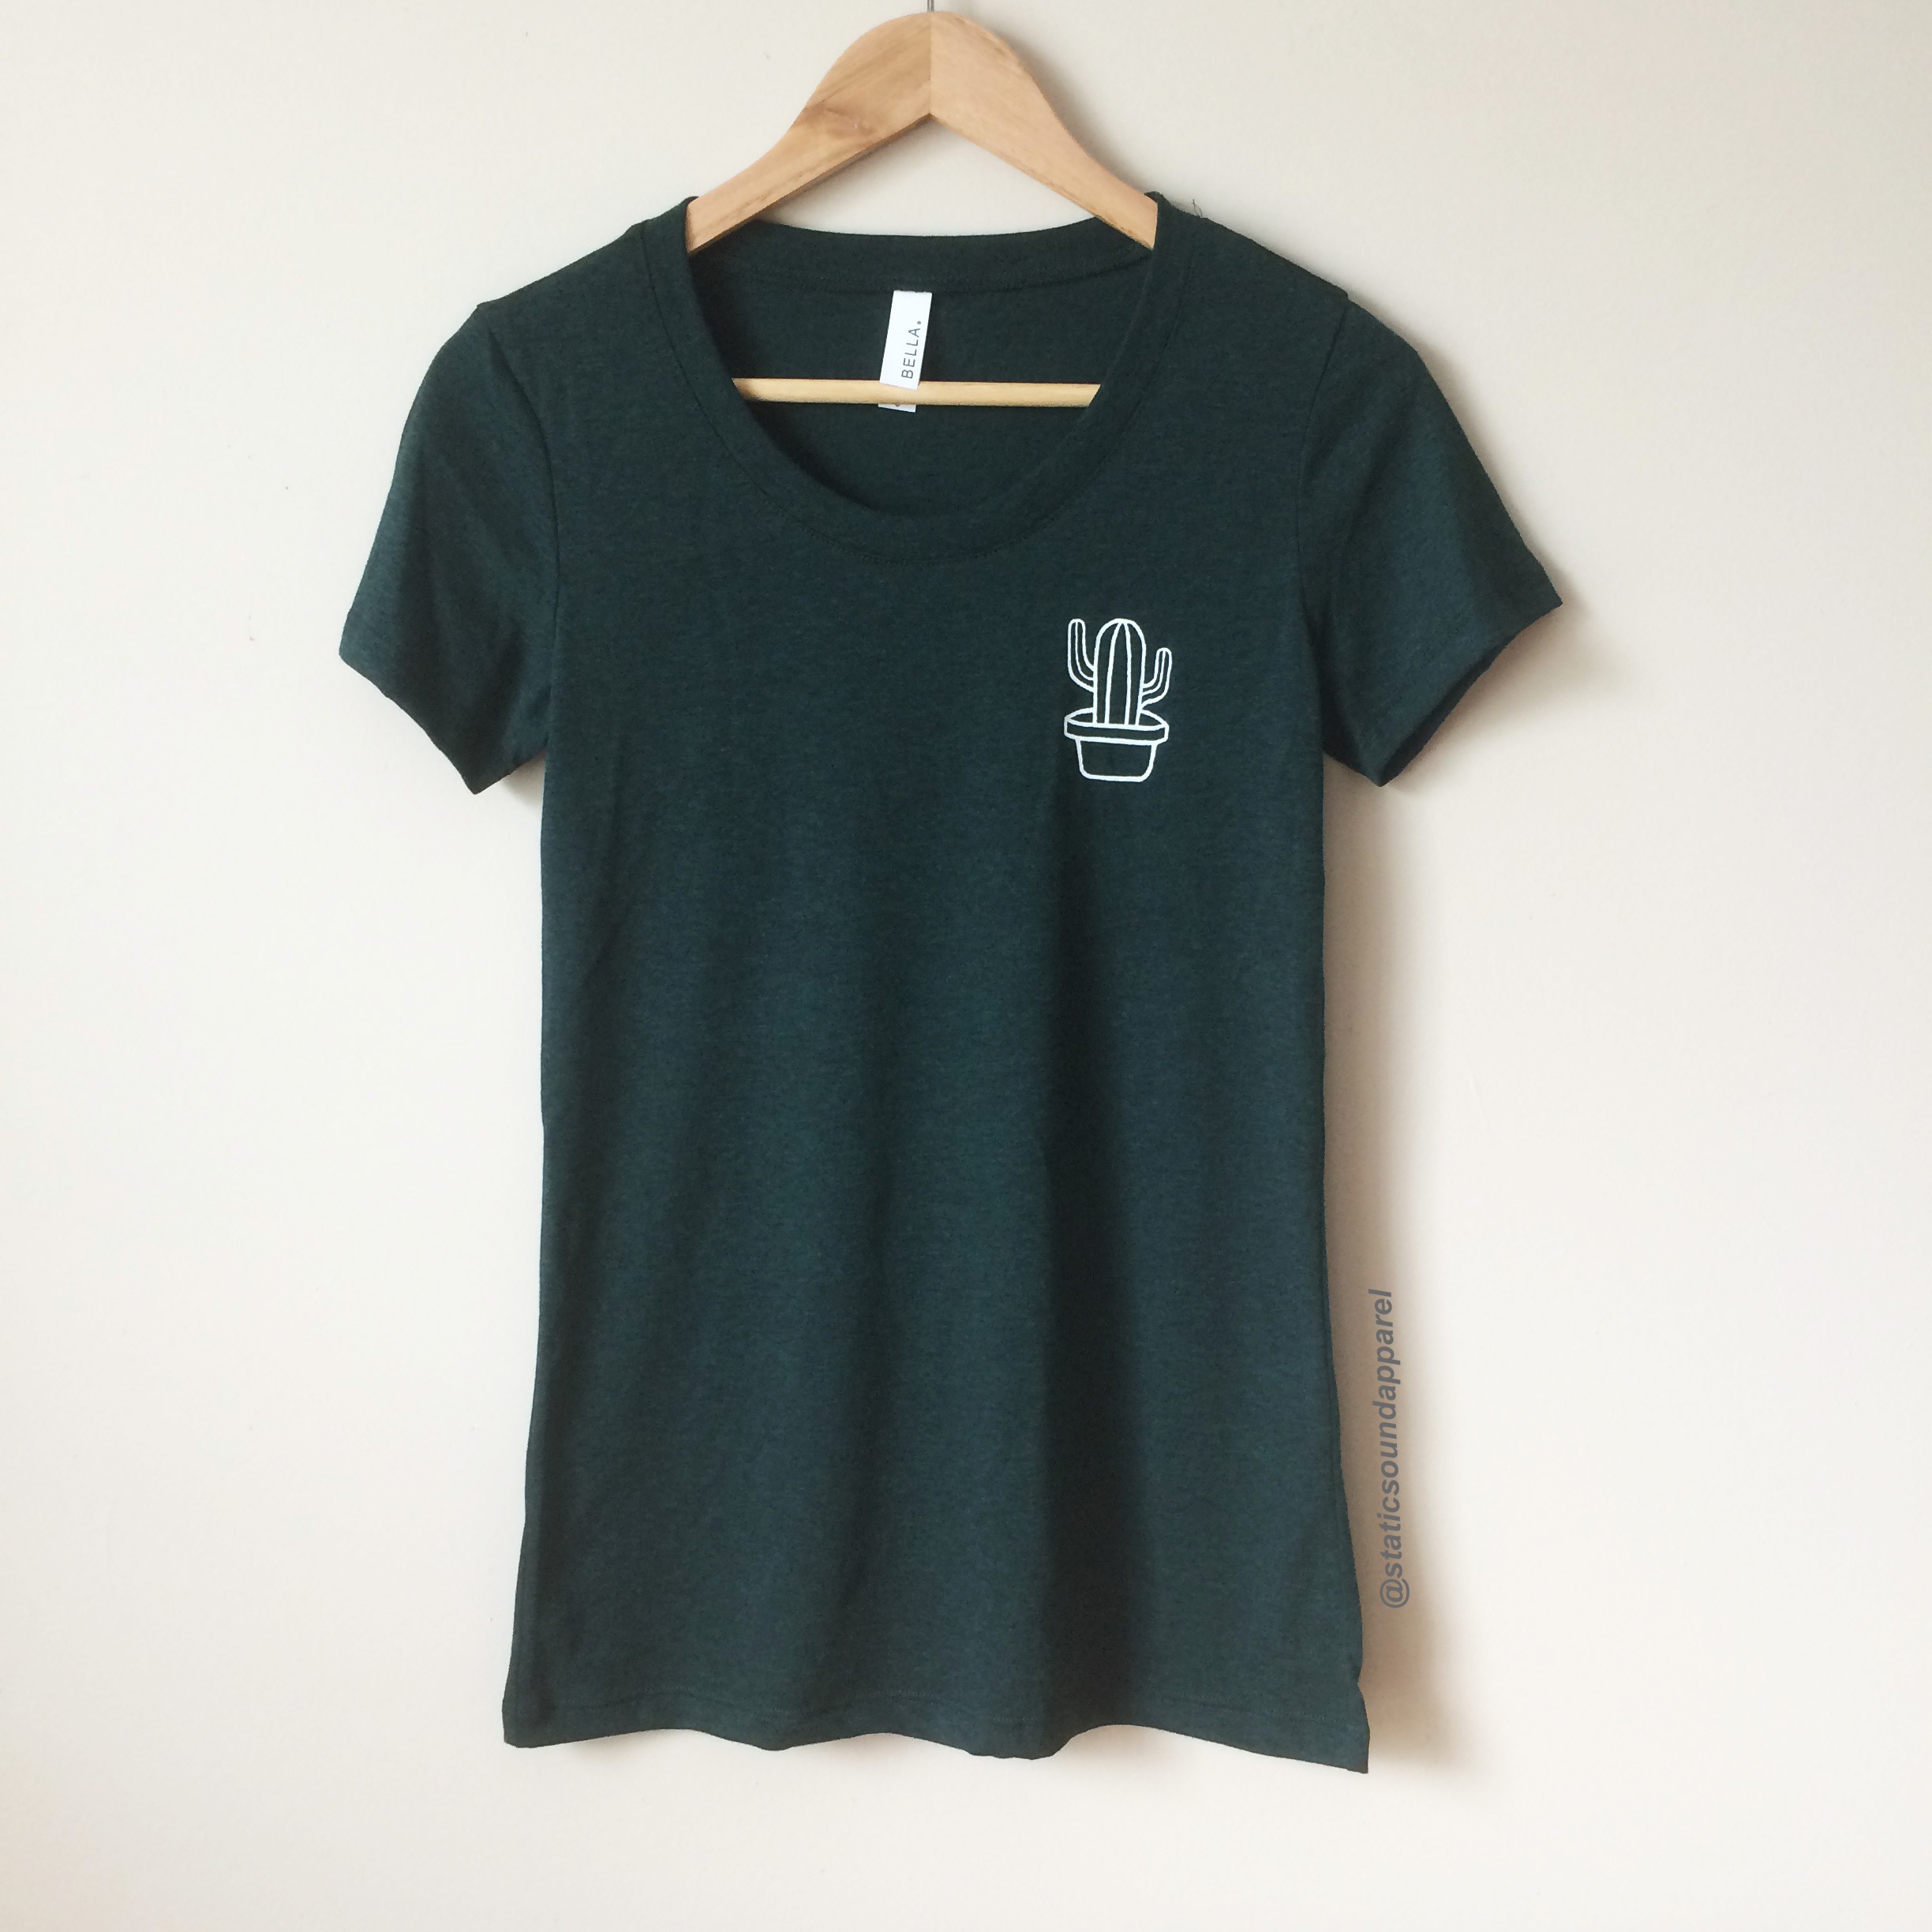 Cactus Forest T-Shirt - Thumbnail 1